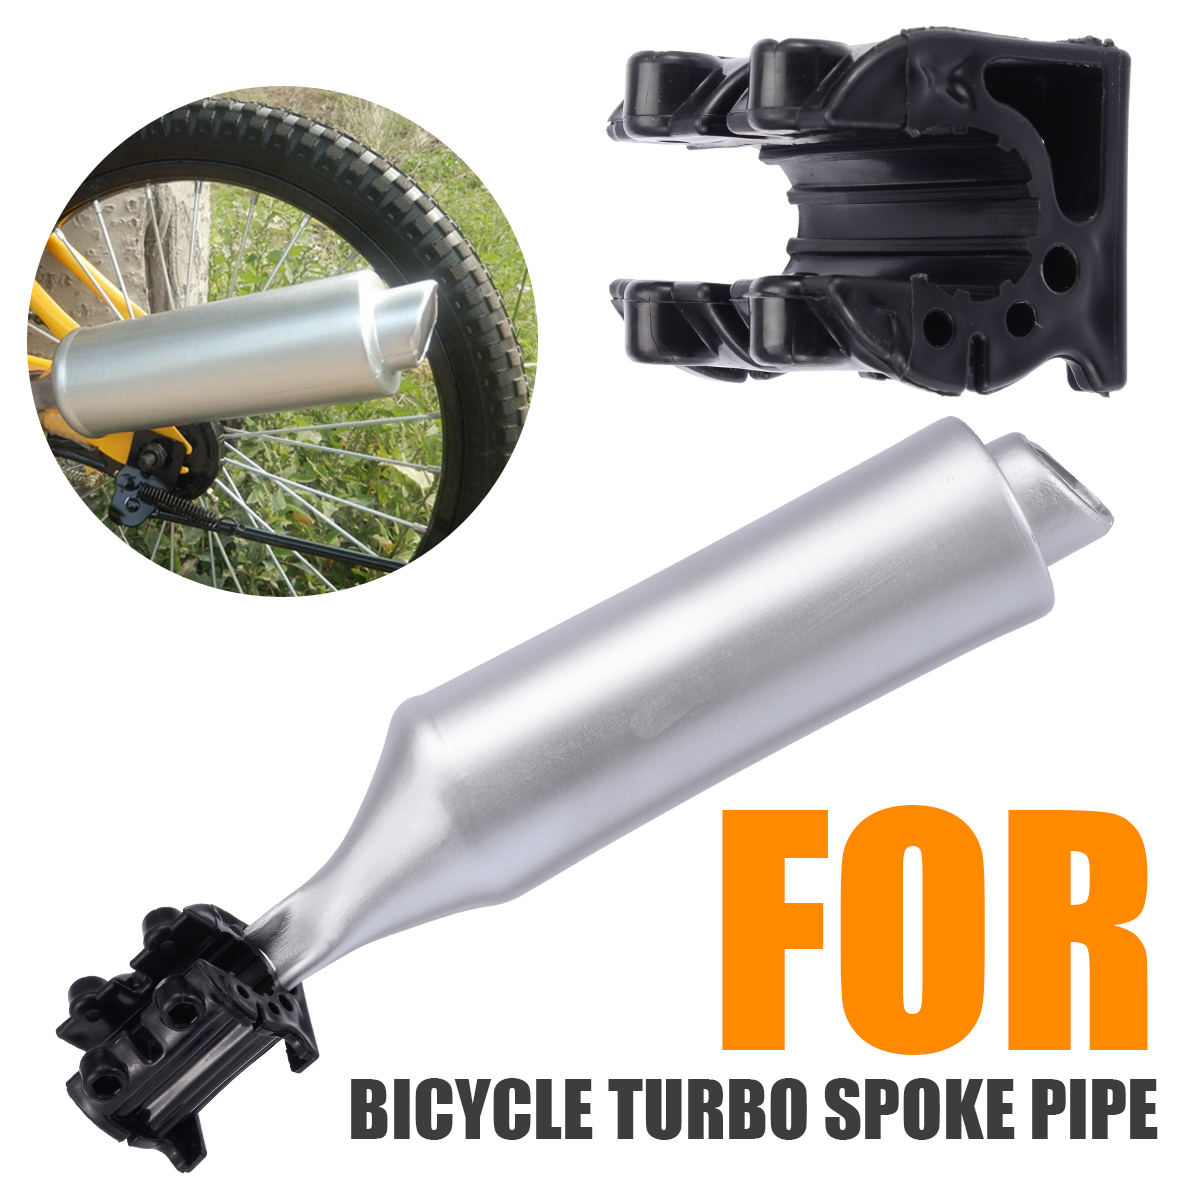 Silver Bicycle Pipe Exhaust System Motorcycle Sounds Noise Part Bike Spoke Sound Maker Bike Engine Bicycle Repair Tool